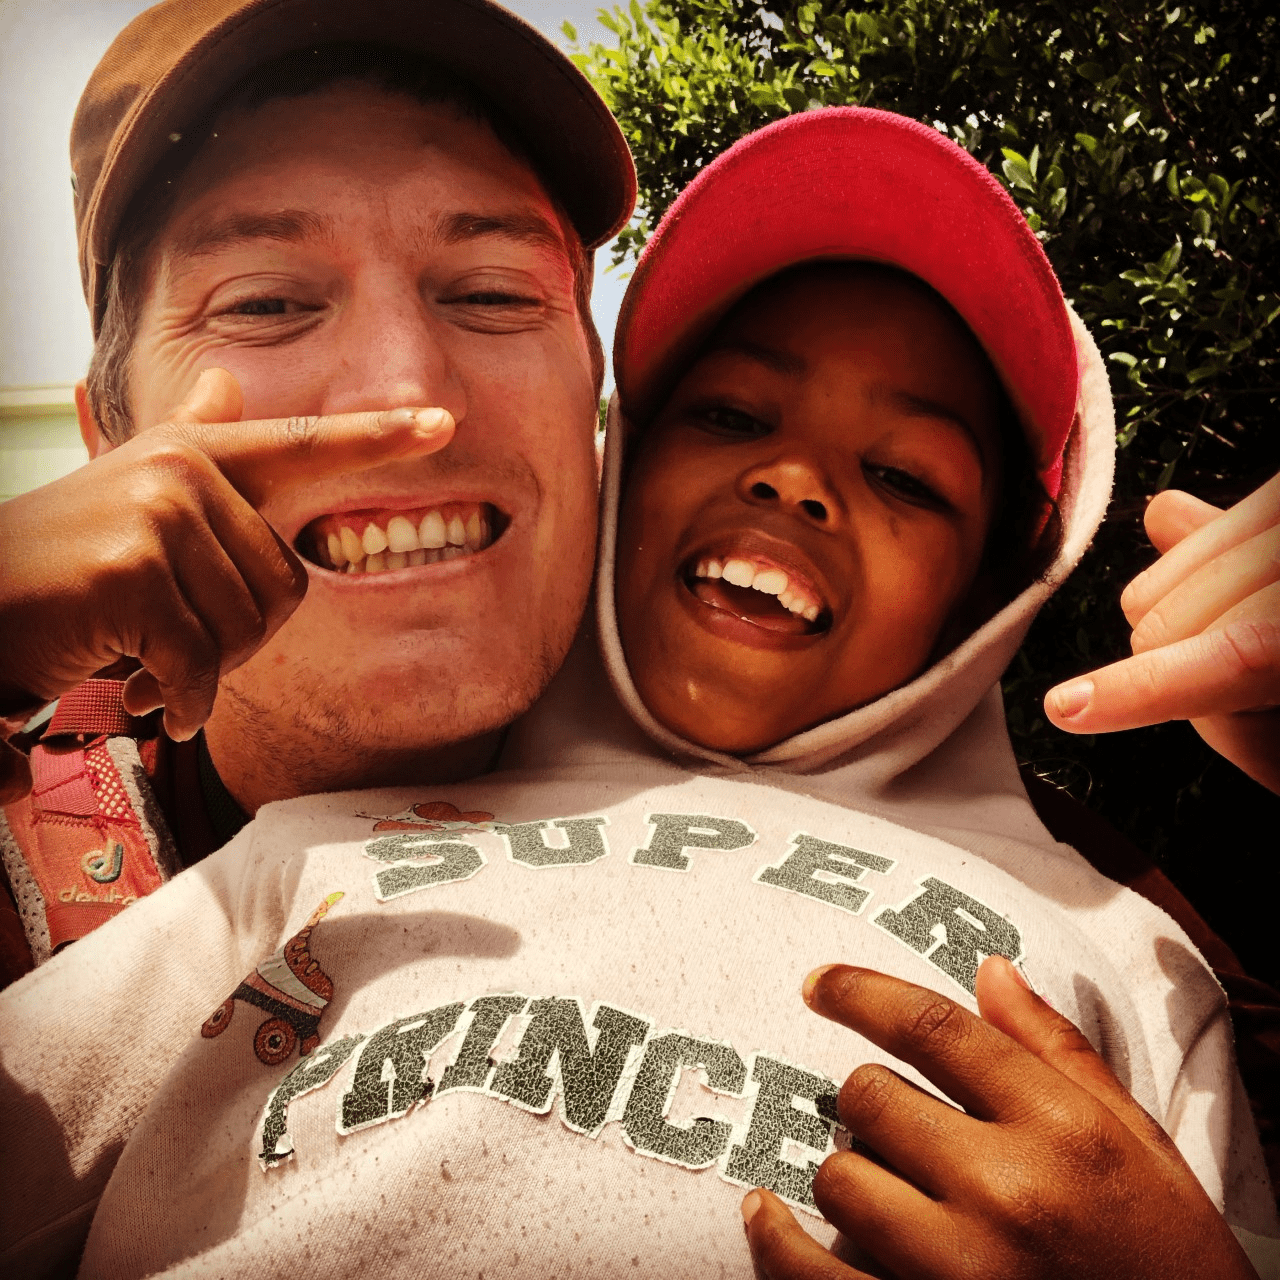 South Africa National Cannabis Master Plan.-MJ Stowe with one of SANPUD beneficiaries' children, which was taken during outreach.